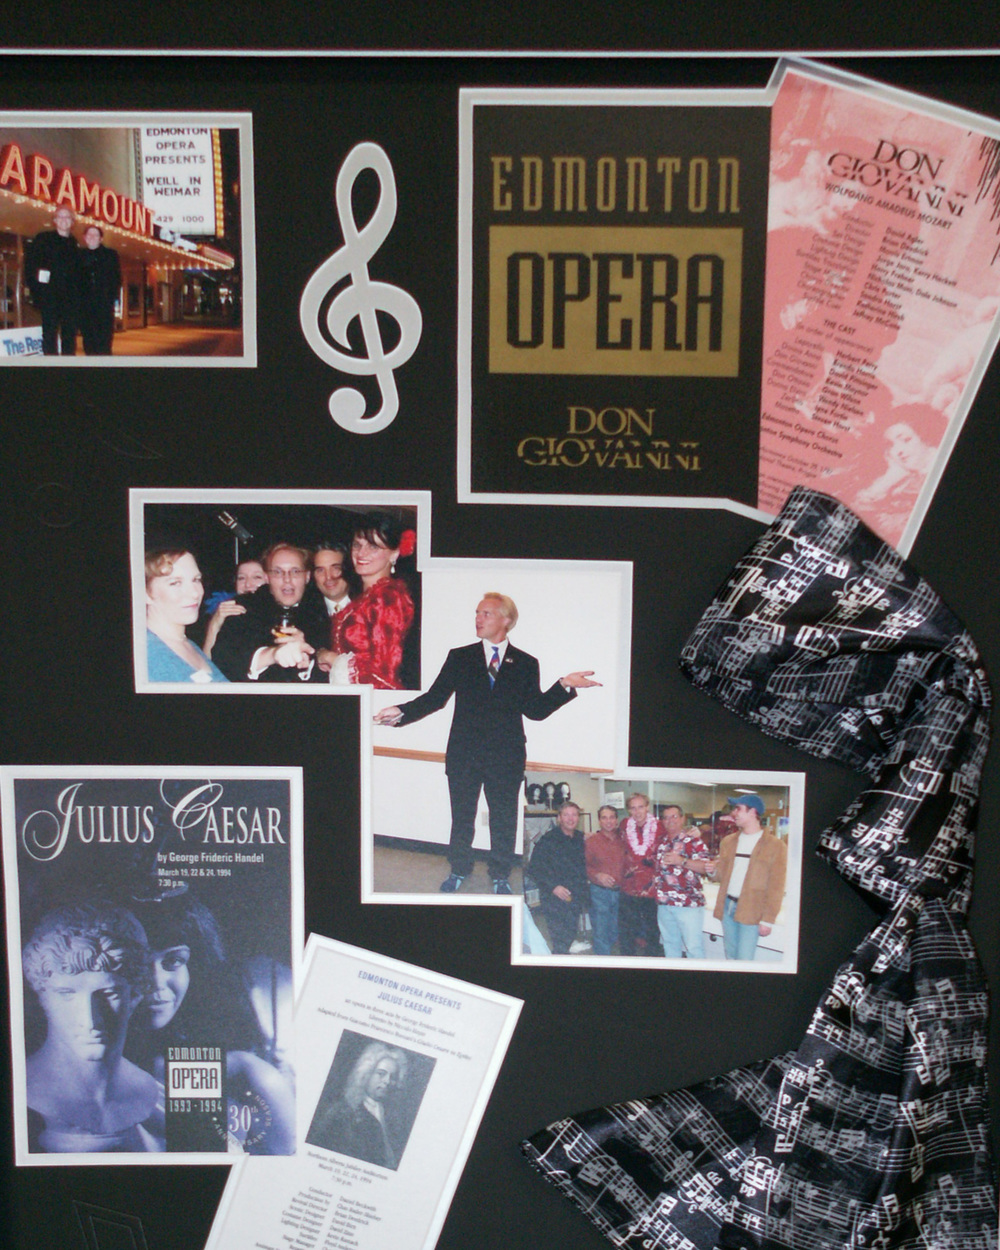 custom framed photos and programes from stage production of Edmonton Opera